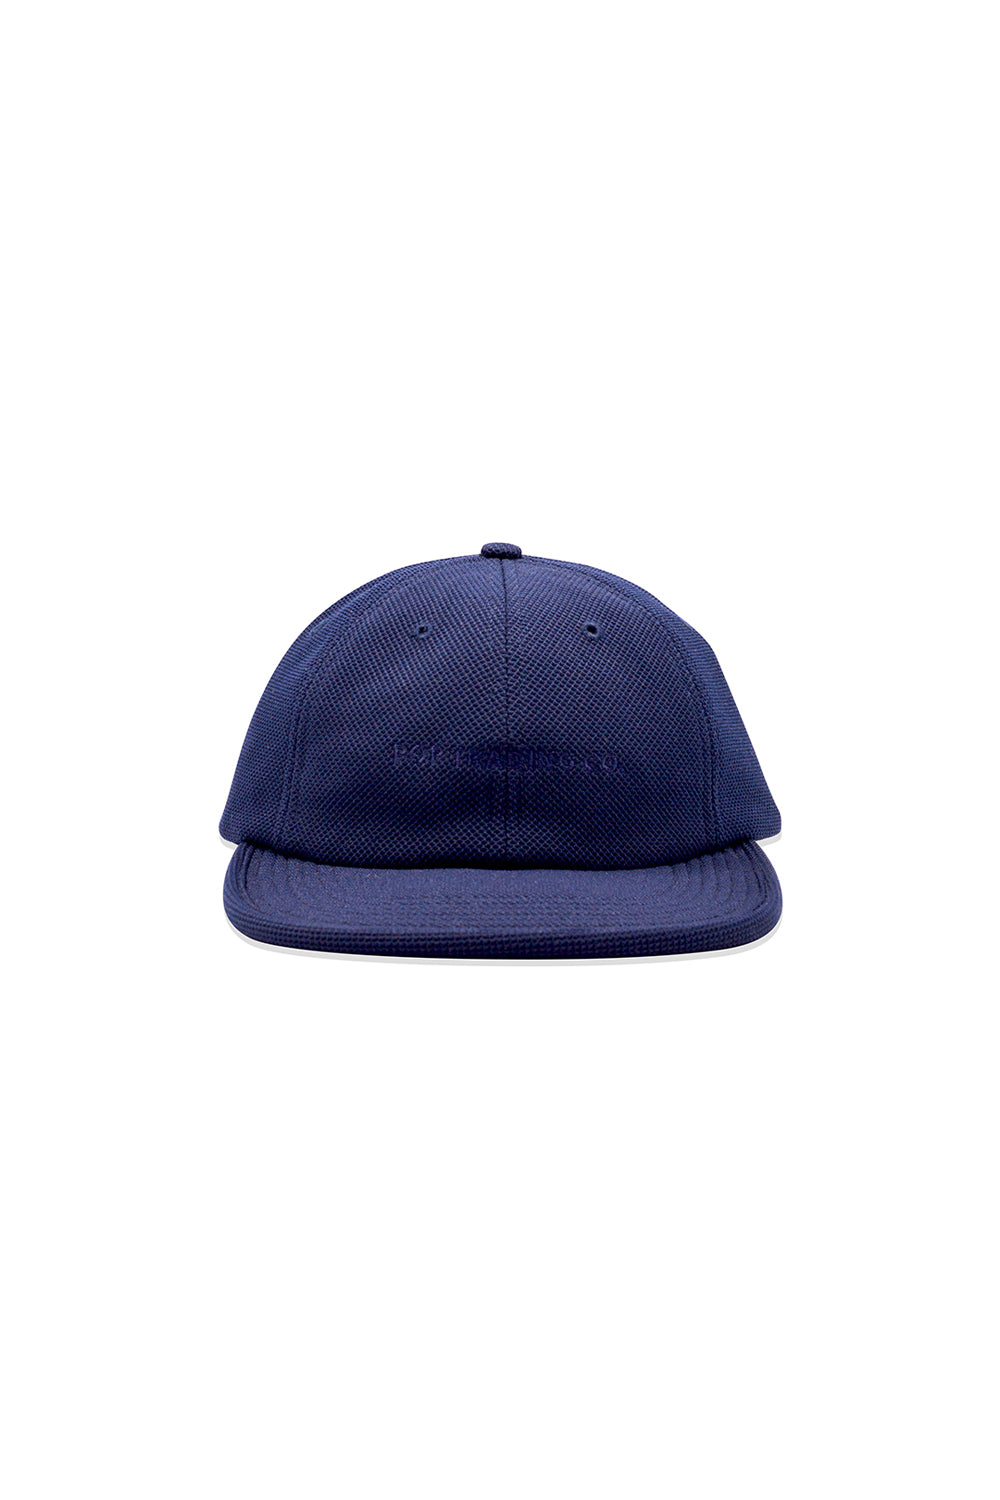 FLEXFOAM 6 PANEL HAT (Navy Diamond)【POP TRADING COMPANY】